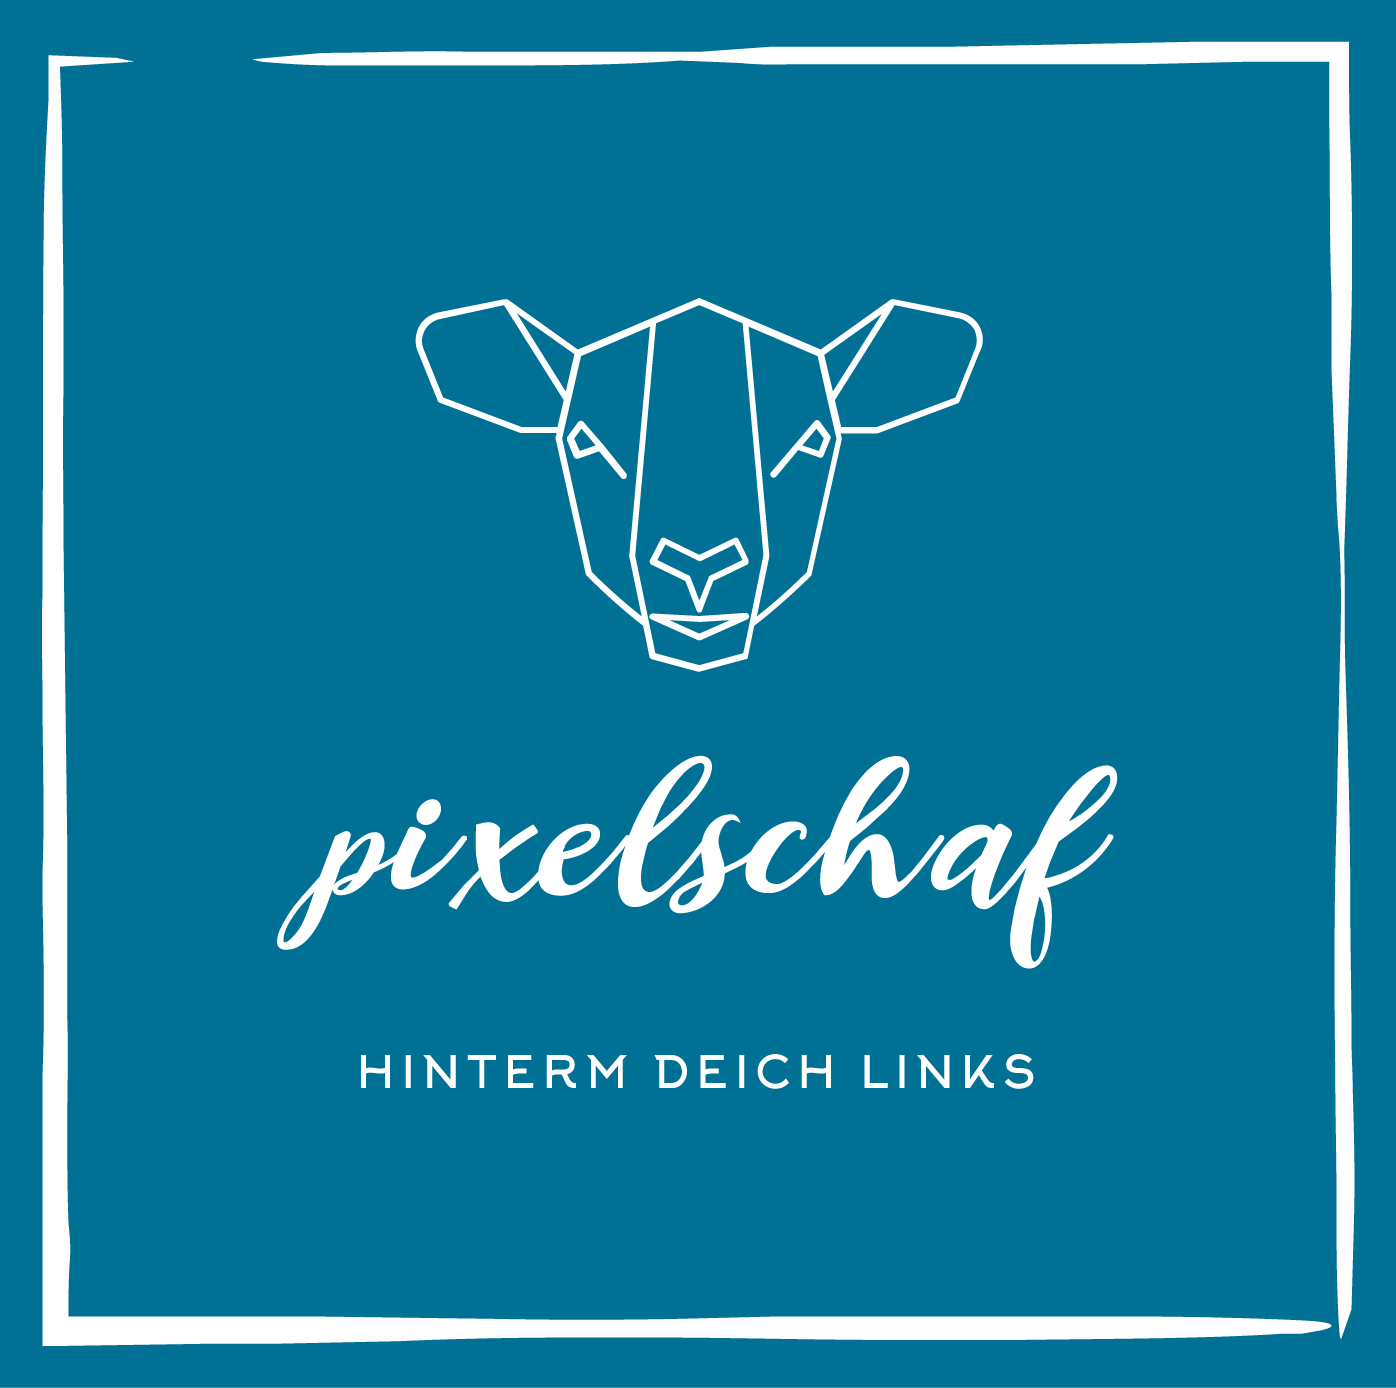 Hinterm Deich links